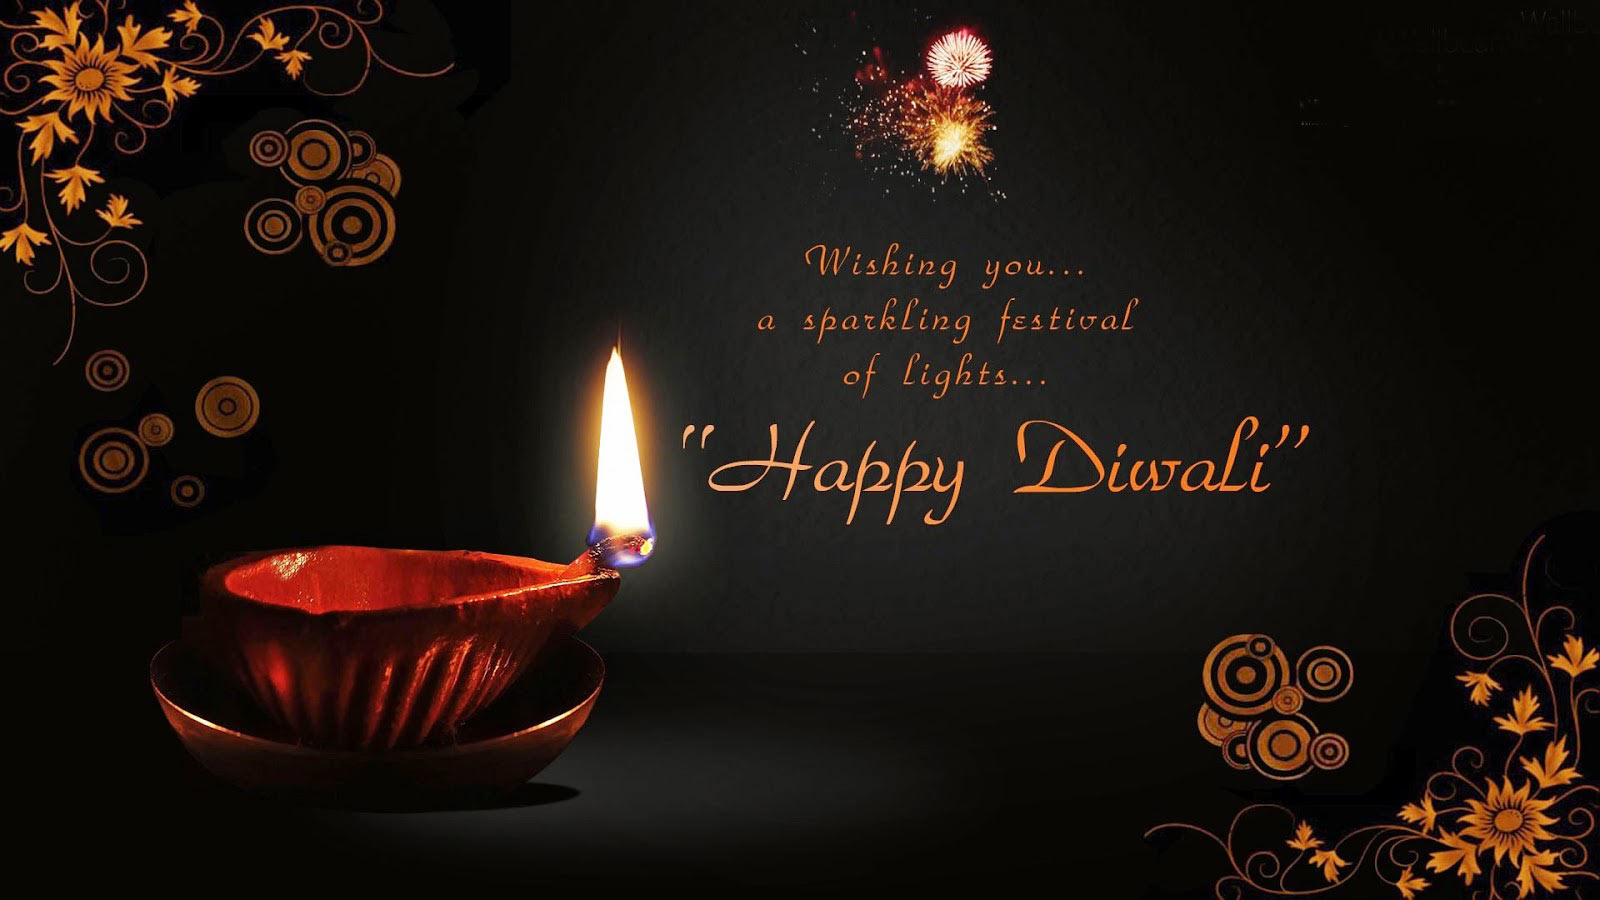 information diwali festival Diwali 2017 this video is related to the information about the diwali festival diwali 2017 how to celebrate 5 days of diwali, diwali song happy diwali 5.